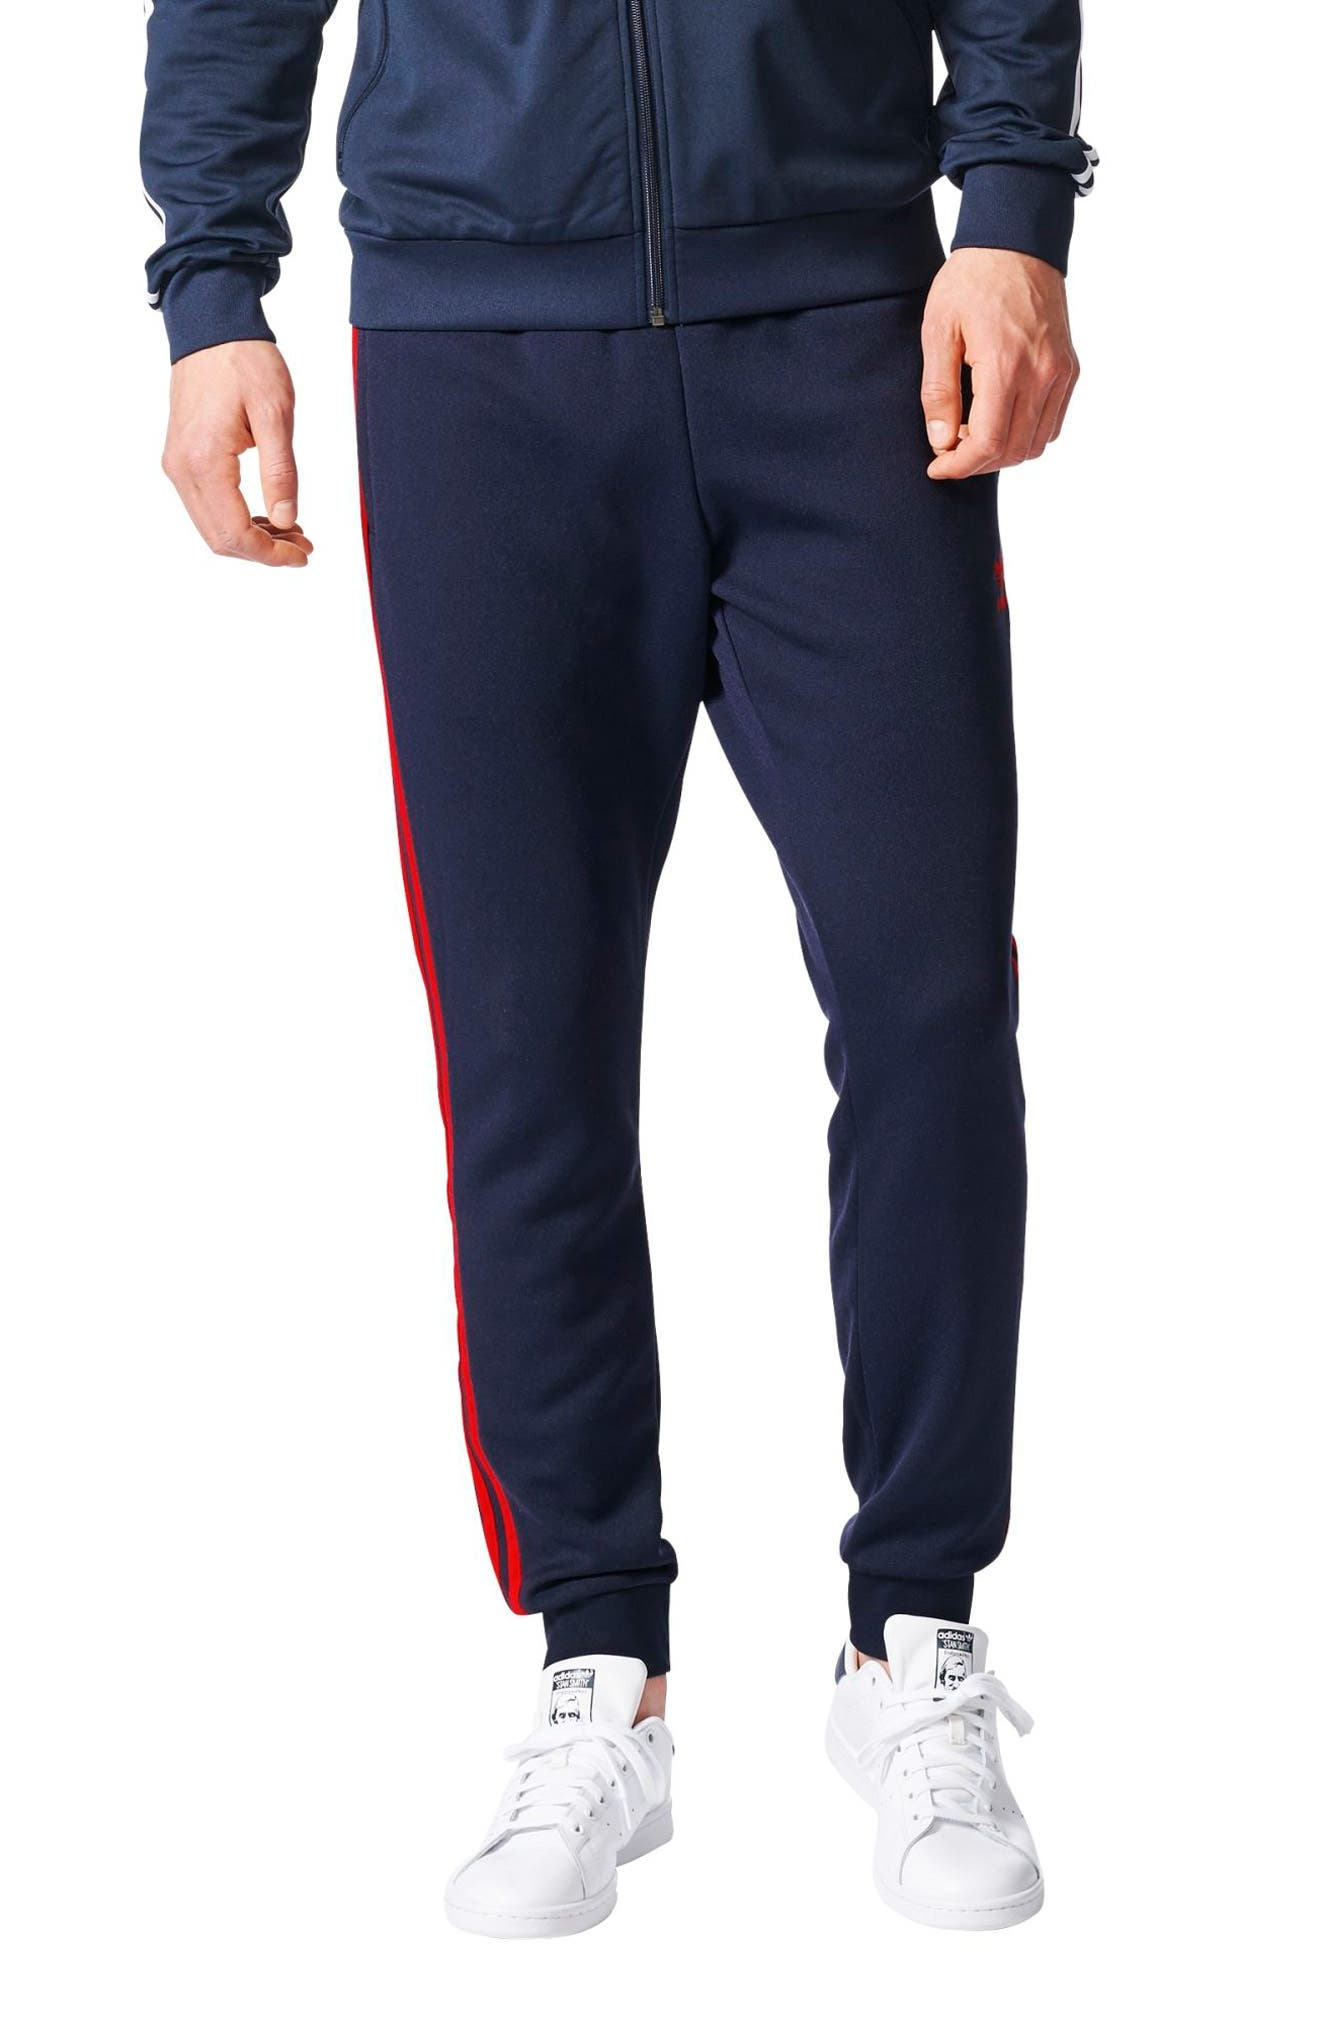 adidas Originals 'Superstar' Track Pants